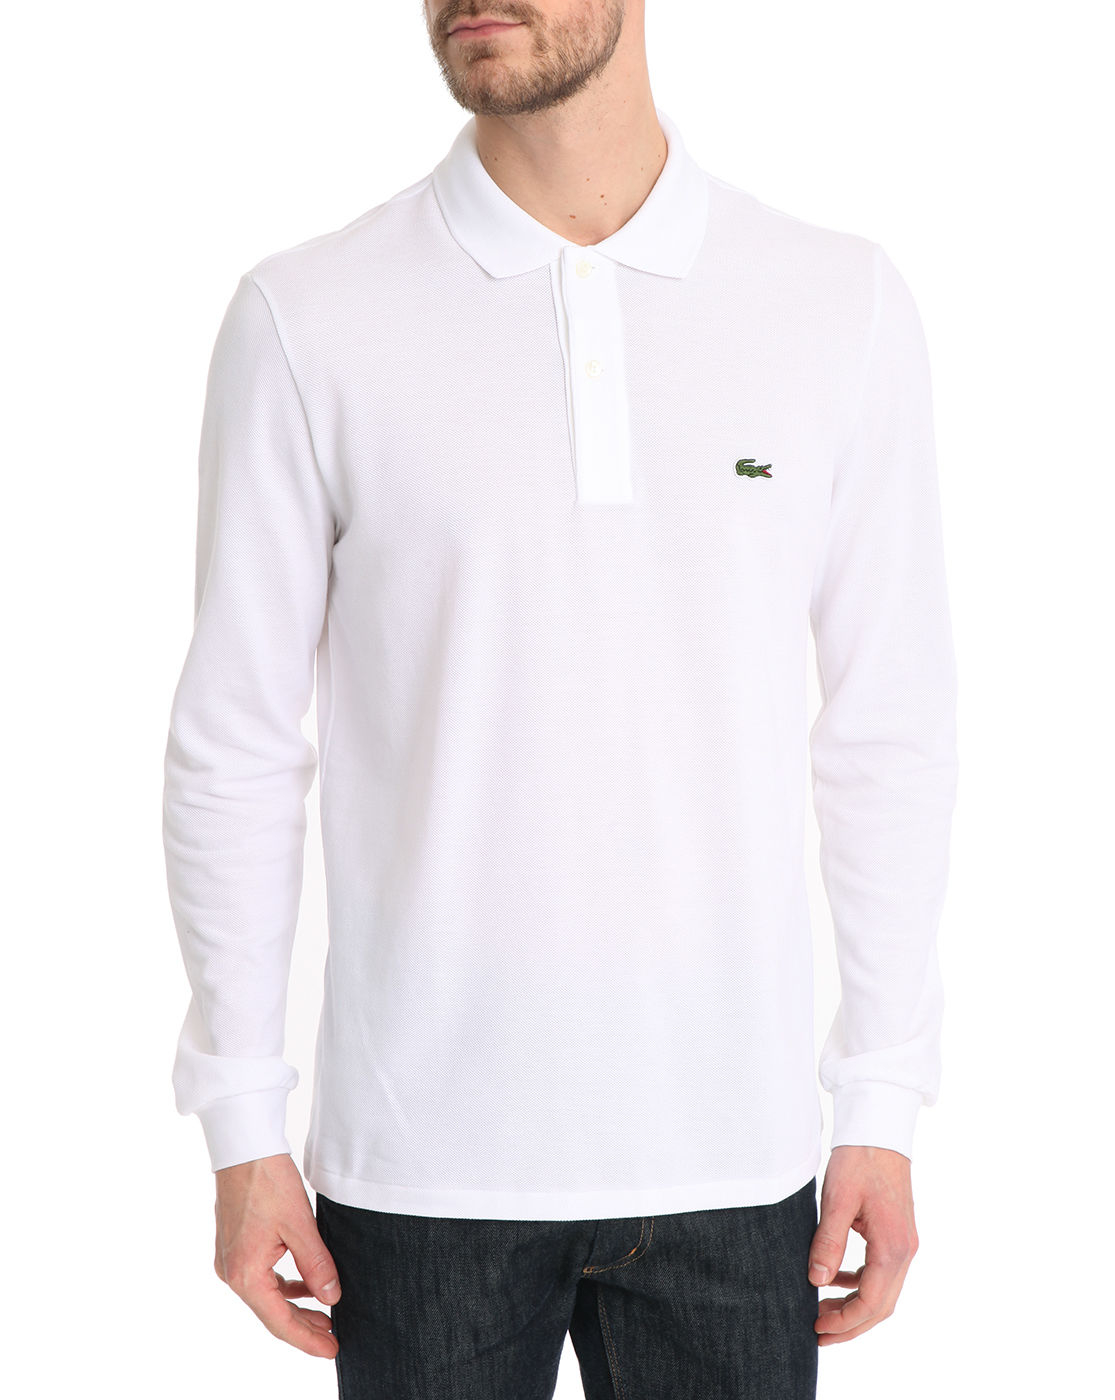 lacoste white l1312 ml polo shirt in white for men lyst. Black Bedroom Furniture Sets. Home Design Ideas